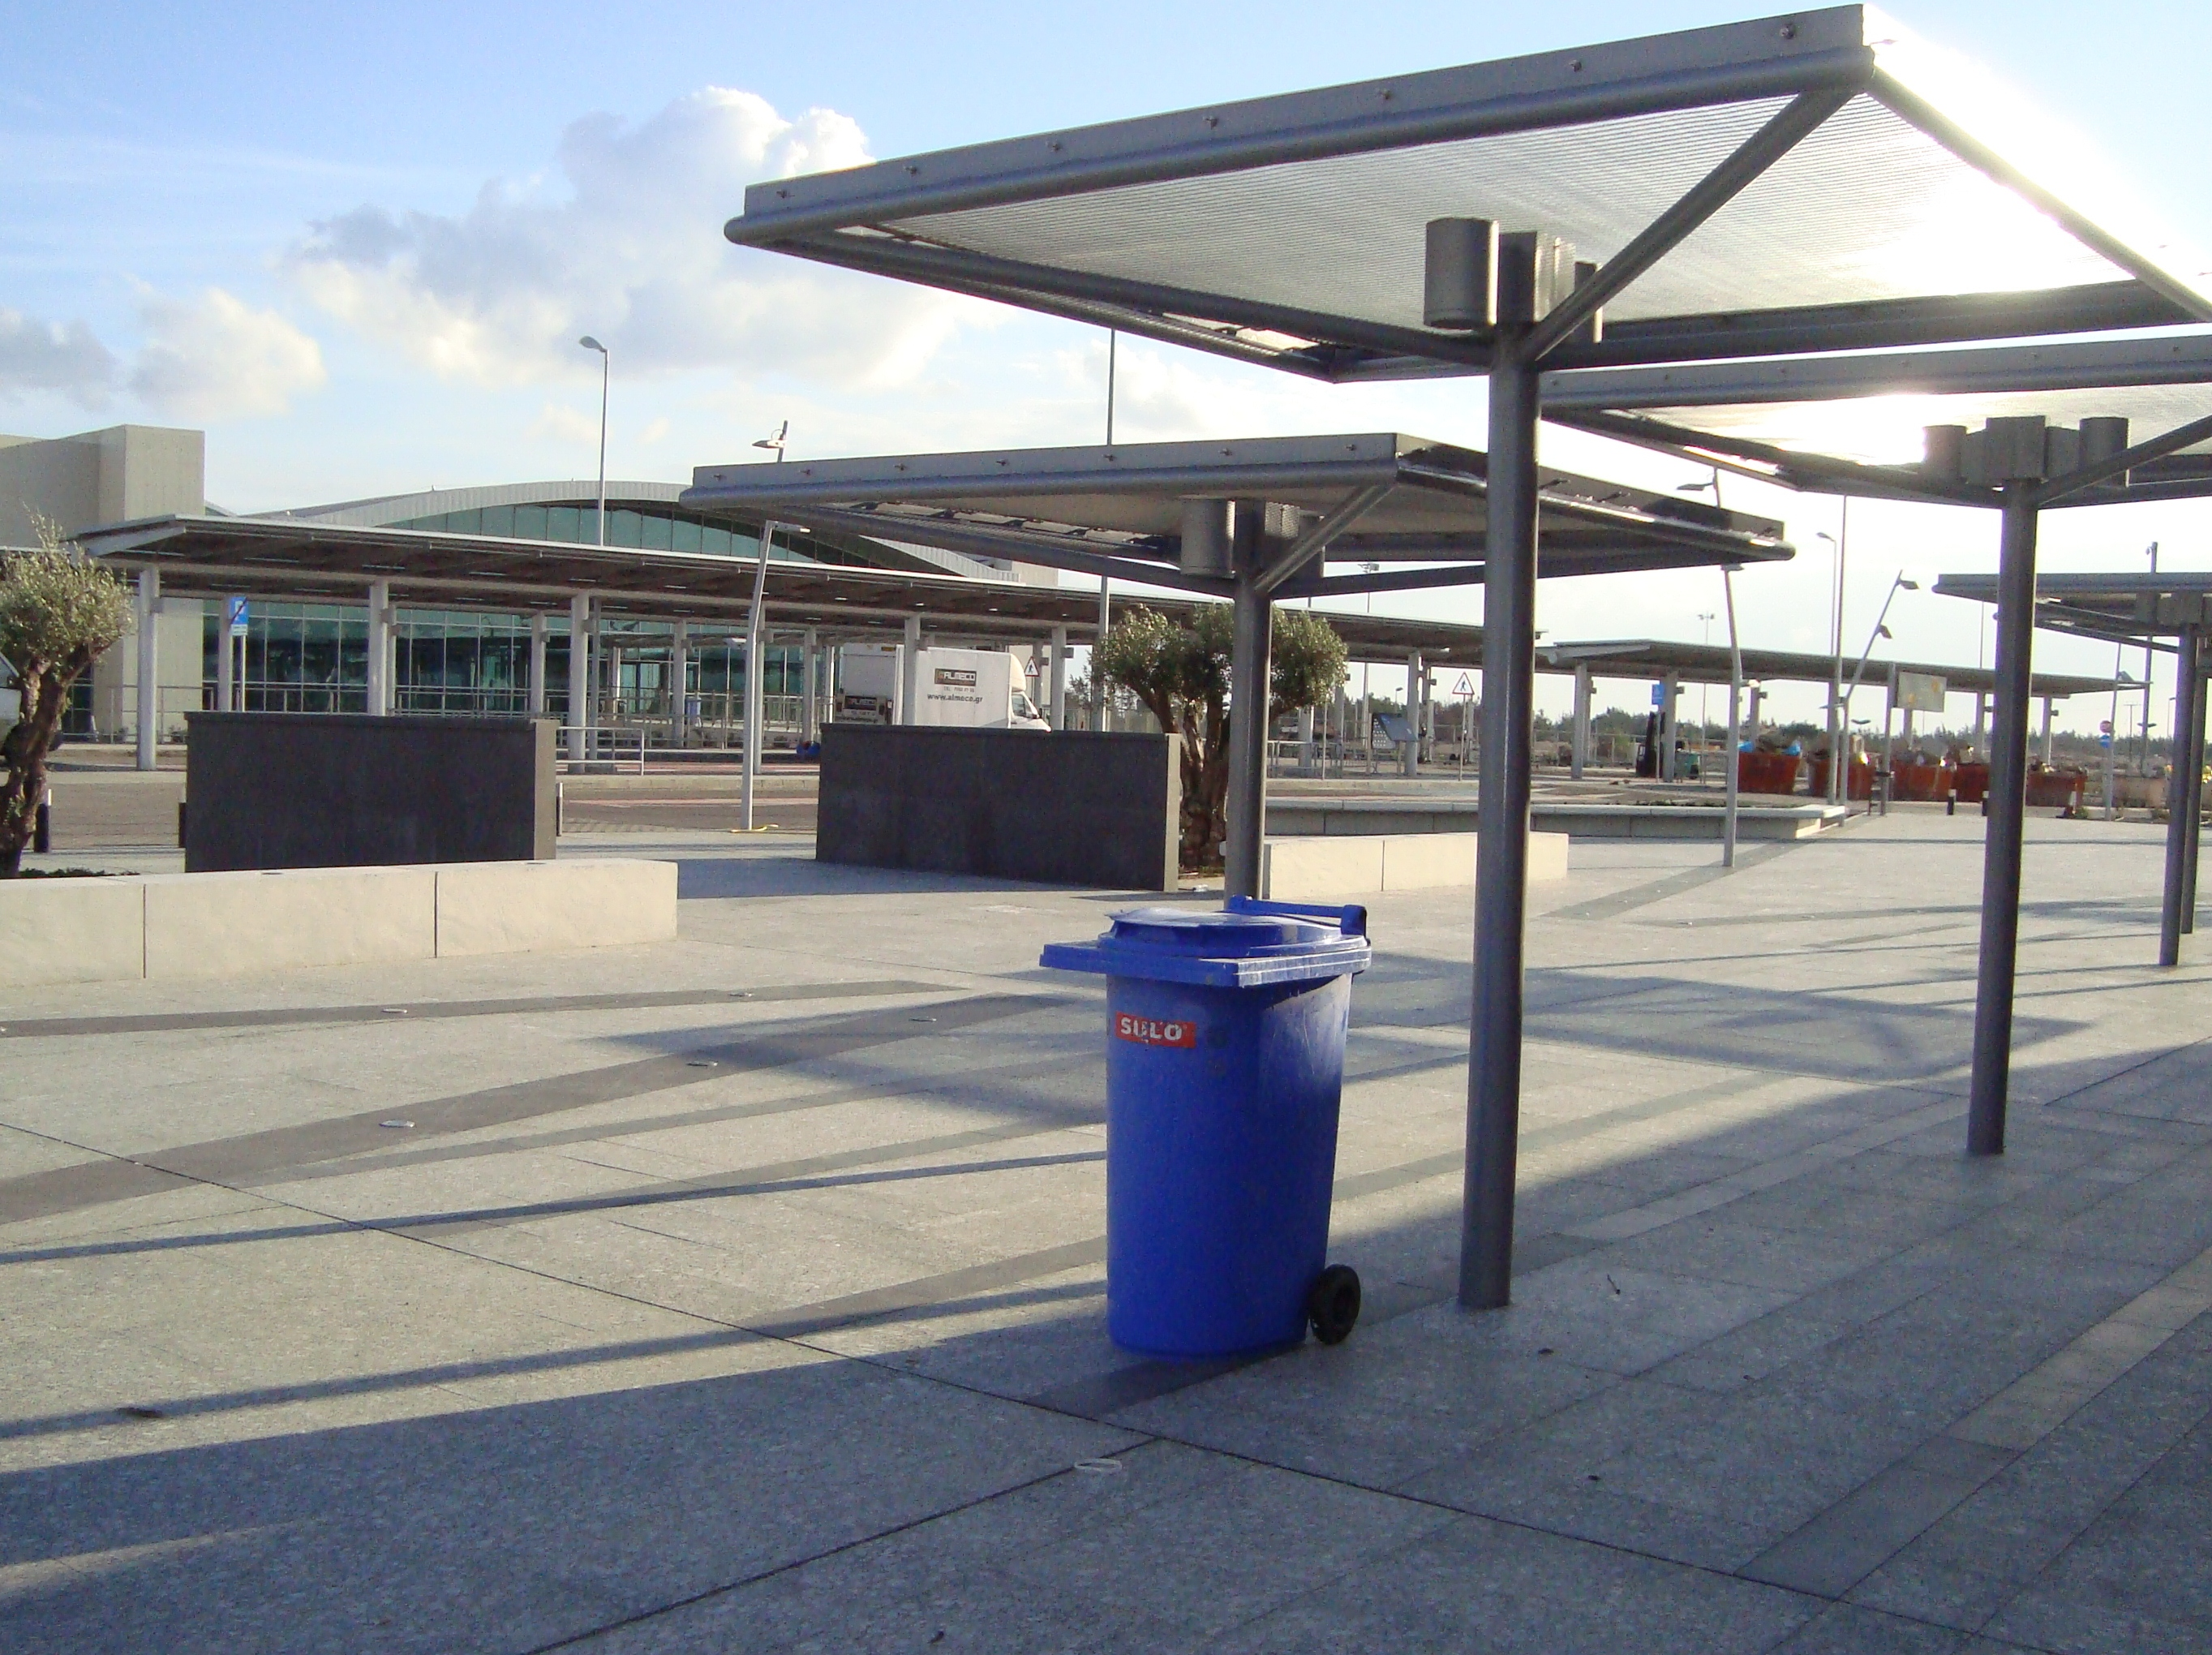 File:Outside smoking area at Larnaca International Airport